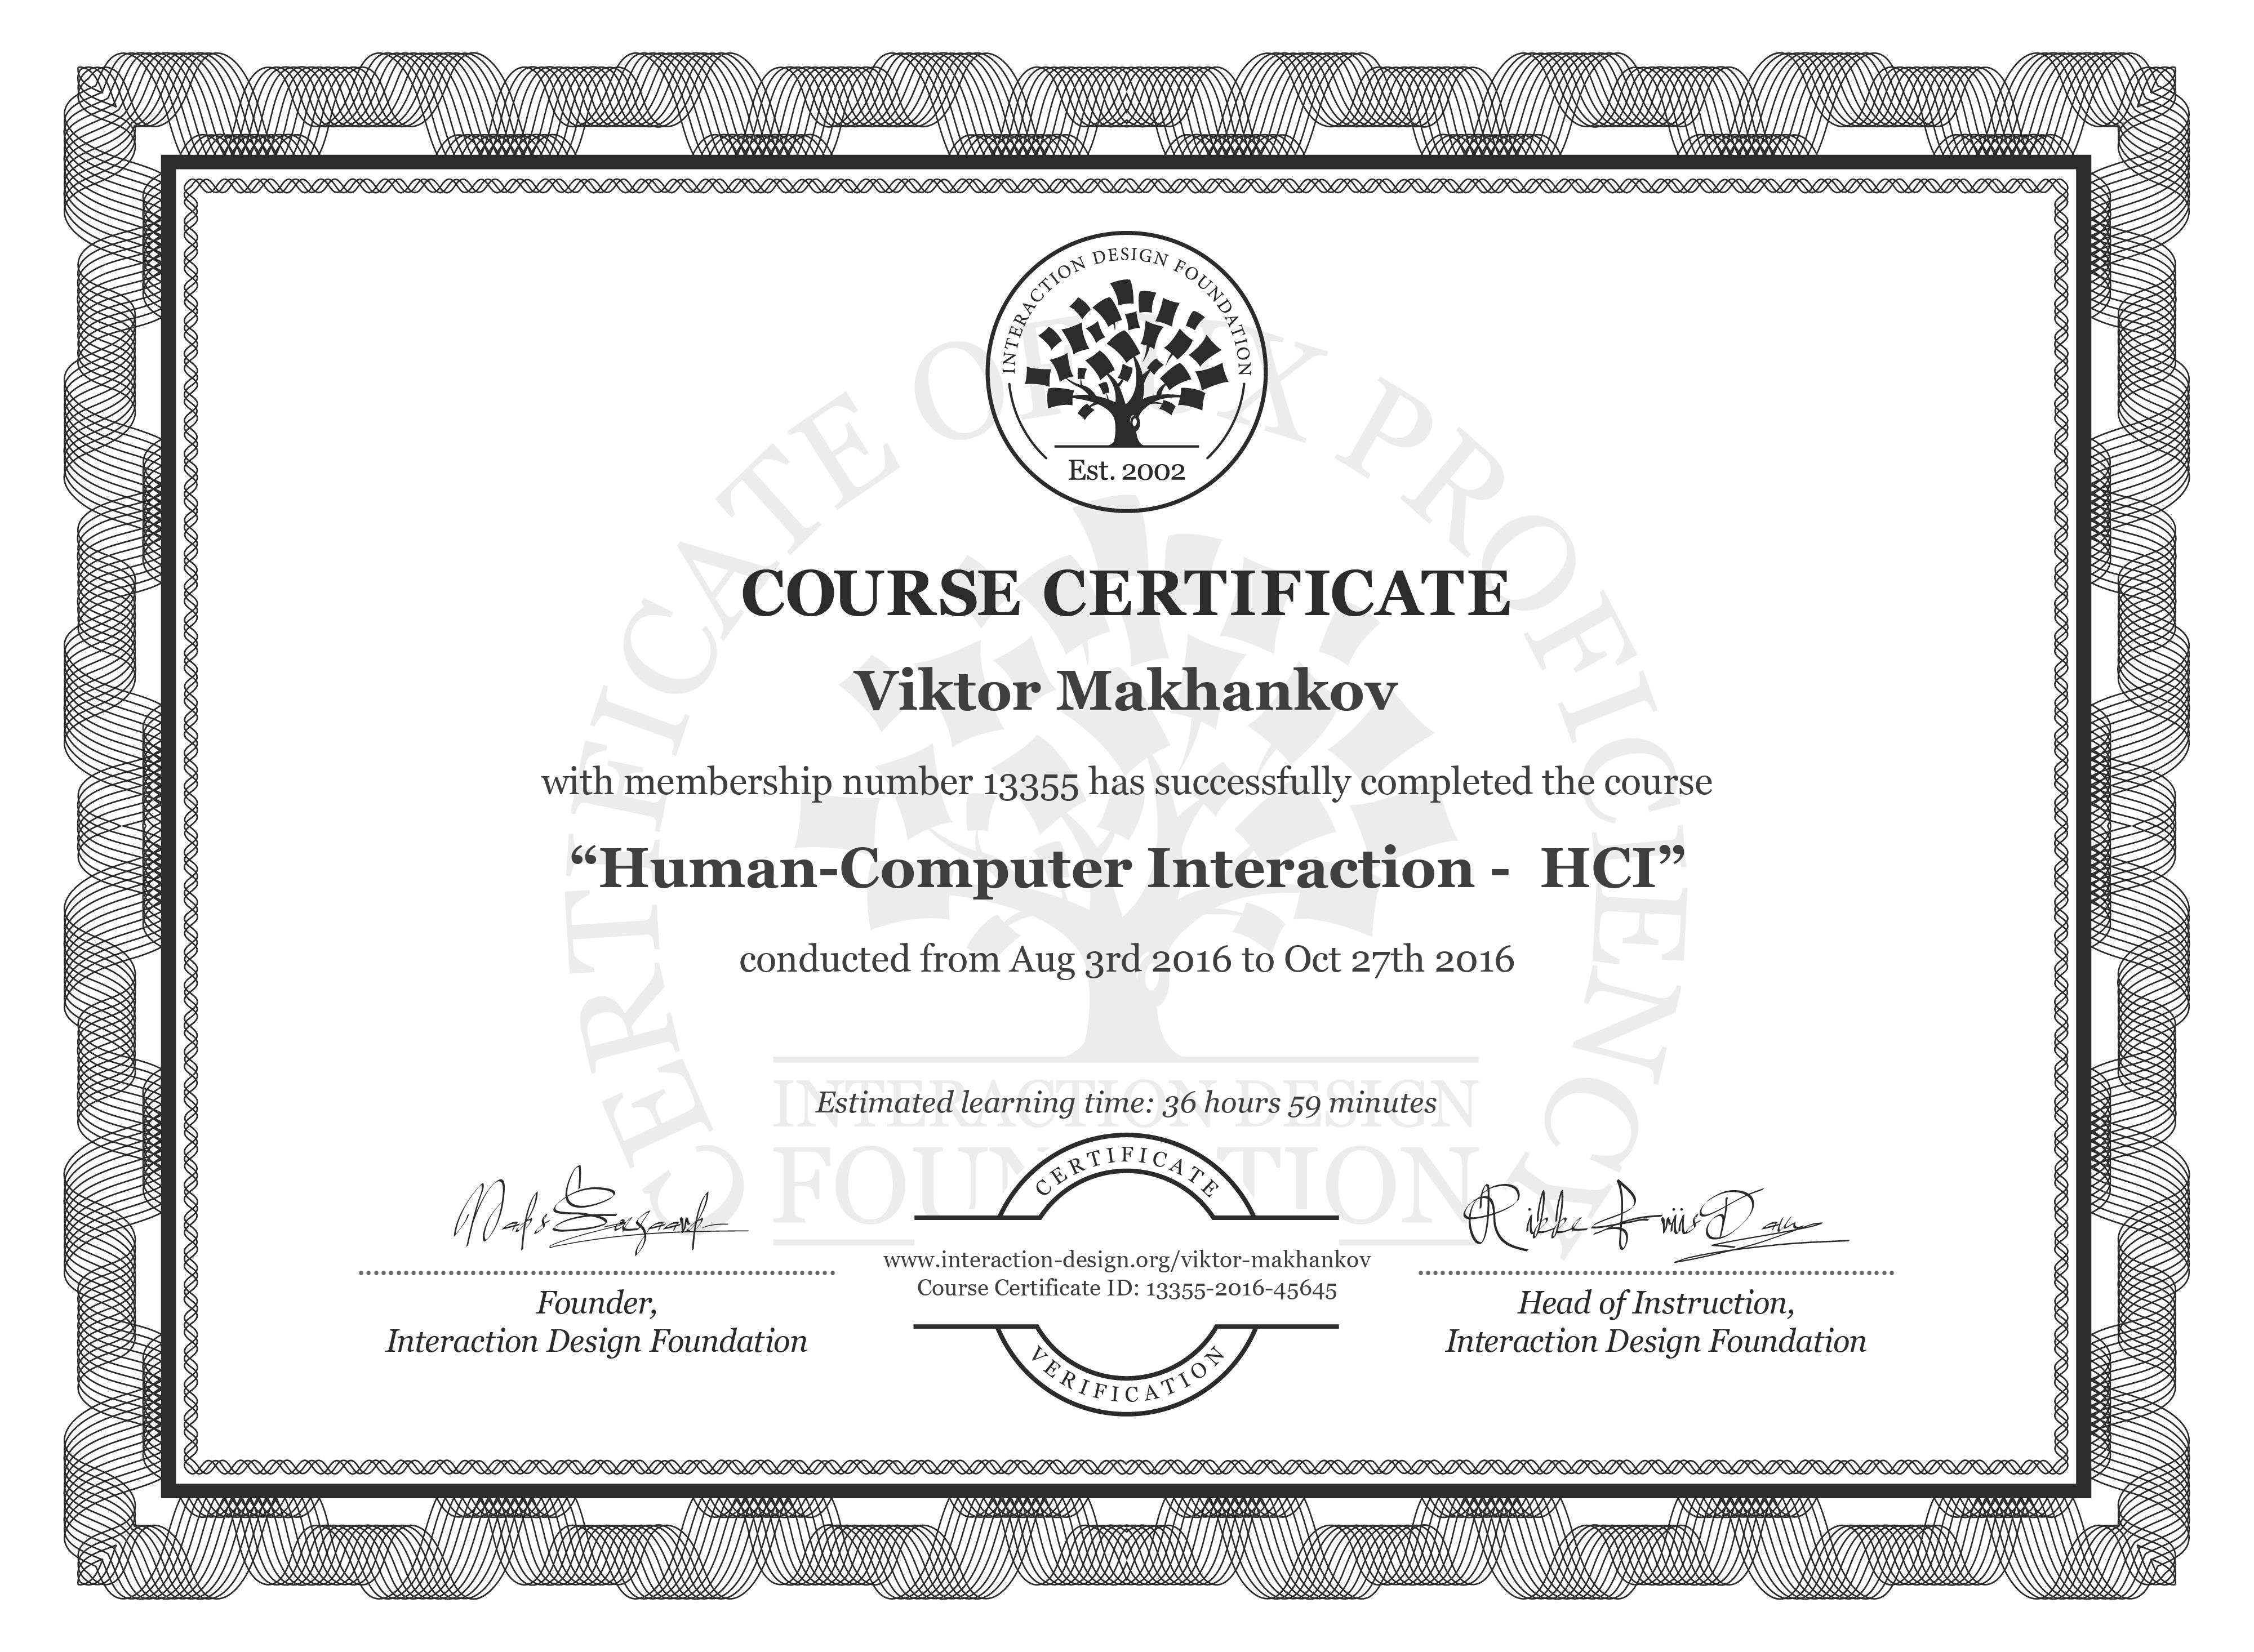 Viktor Makhankov's Course Certificate: Human-Computer Interaction -  HCI